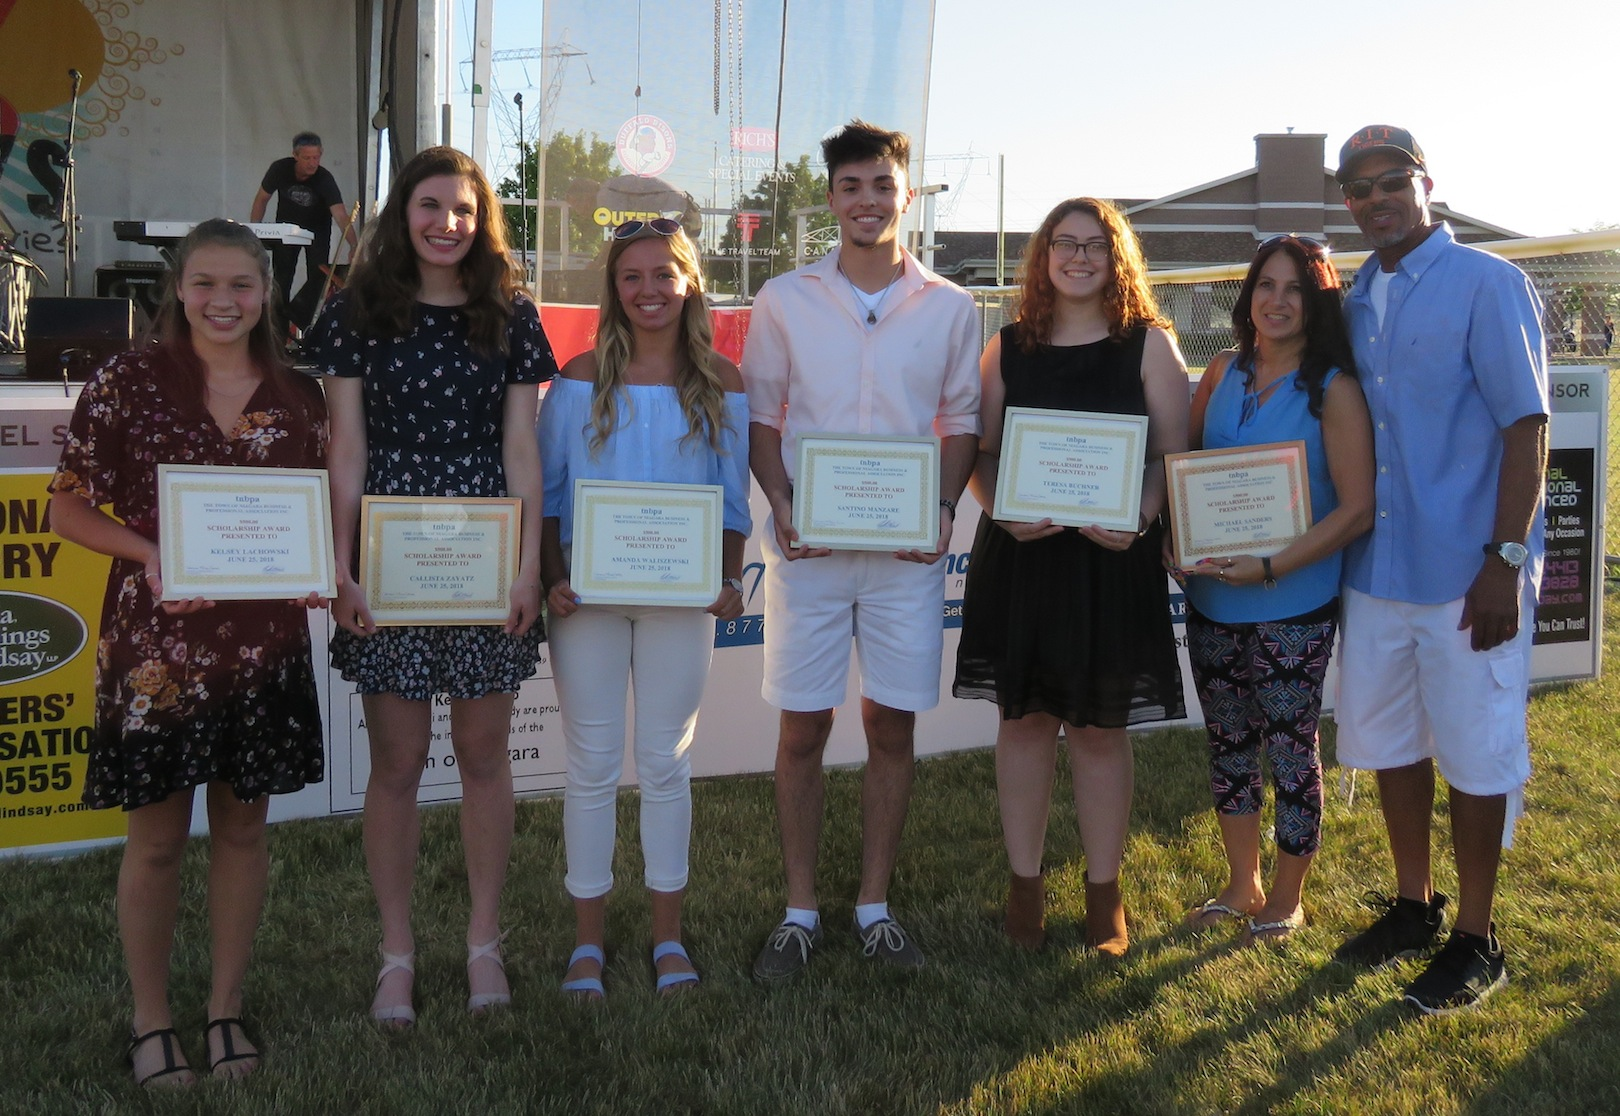 From left, Kelsey Lachowski, Callista Zayatz, Amanda Waliszewski, Santino Manzare, Teresa Buchner, and Lisa Sanders and Michael Sanders Sr. (the parents of Michael Sanders Jr.). (Photo by David Yarger)